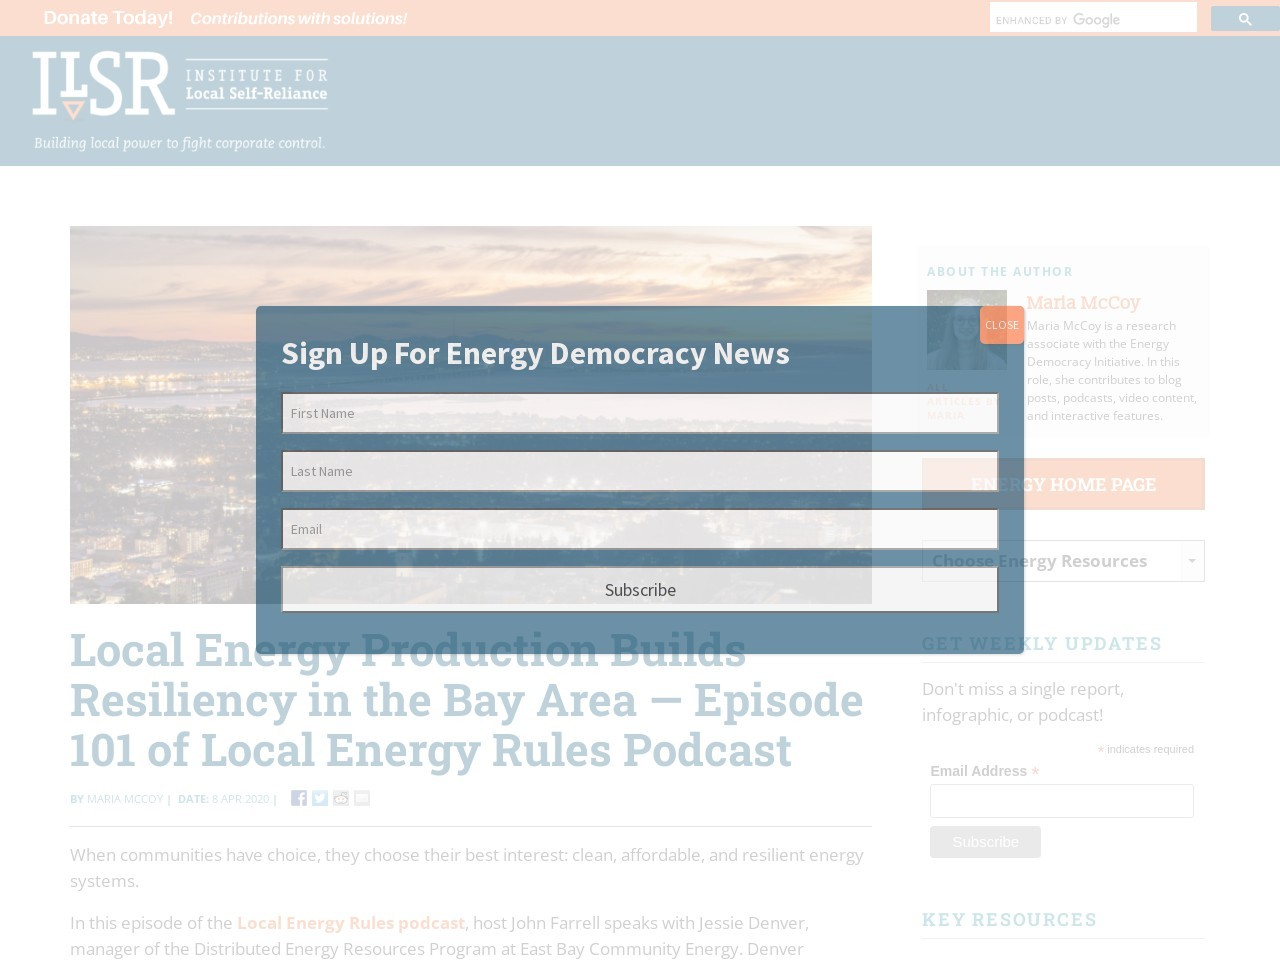 Local Energy Production Builds Resiliency in the Bay Area — Episode 101 of Local Energy Rules Podcast